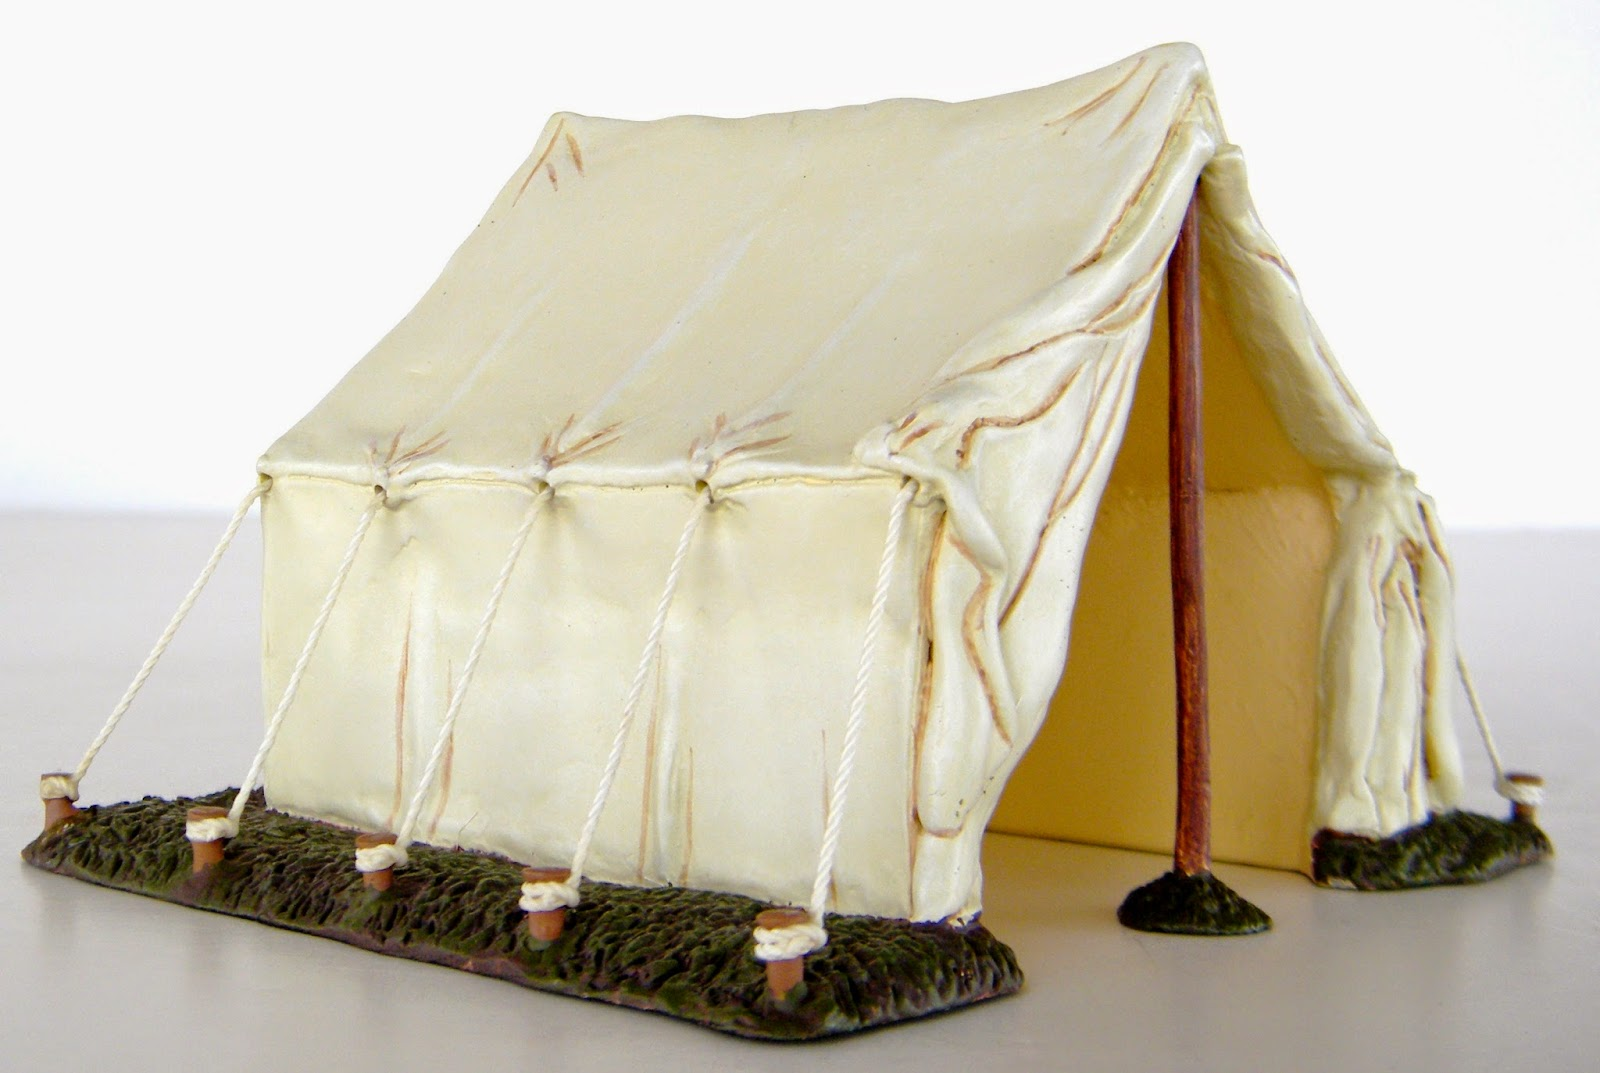 The tents has tie-down ropes made with real string and theyu0027re pre-attached to the tent and to stakes in the u0027groundu0027. Enjoy! & Toys and Stuff: Wm Britains #17380 Civil War Tents